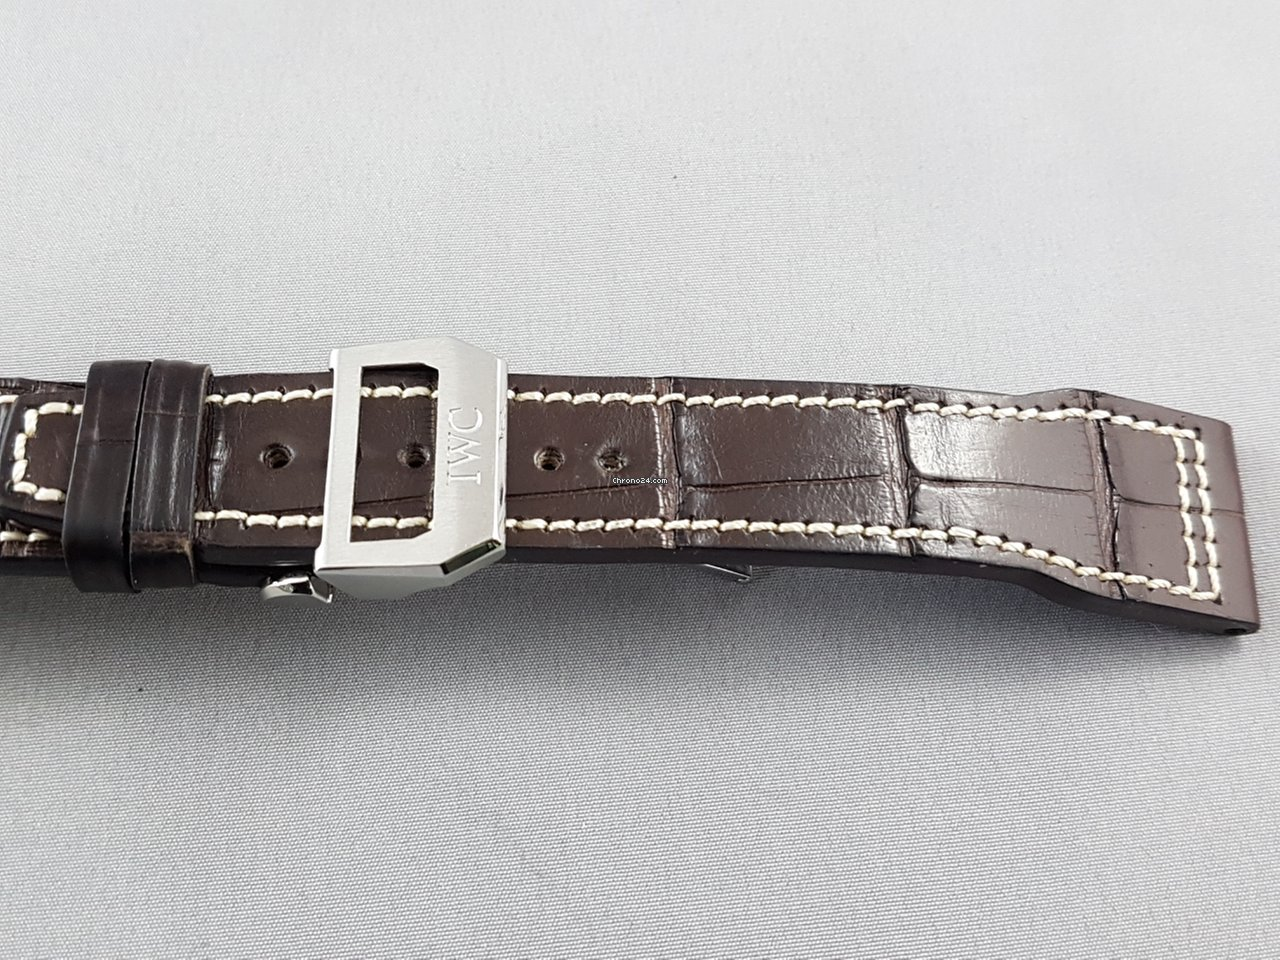 5e91efc1f IWC Pilot's series leather strap with deployment clasp 21 mm for $950 for  sale from a Trusted Seller on Chrono24